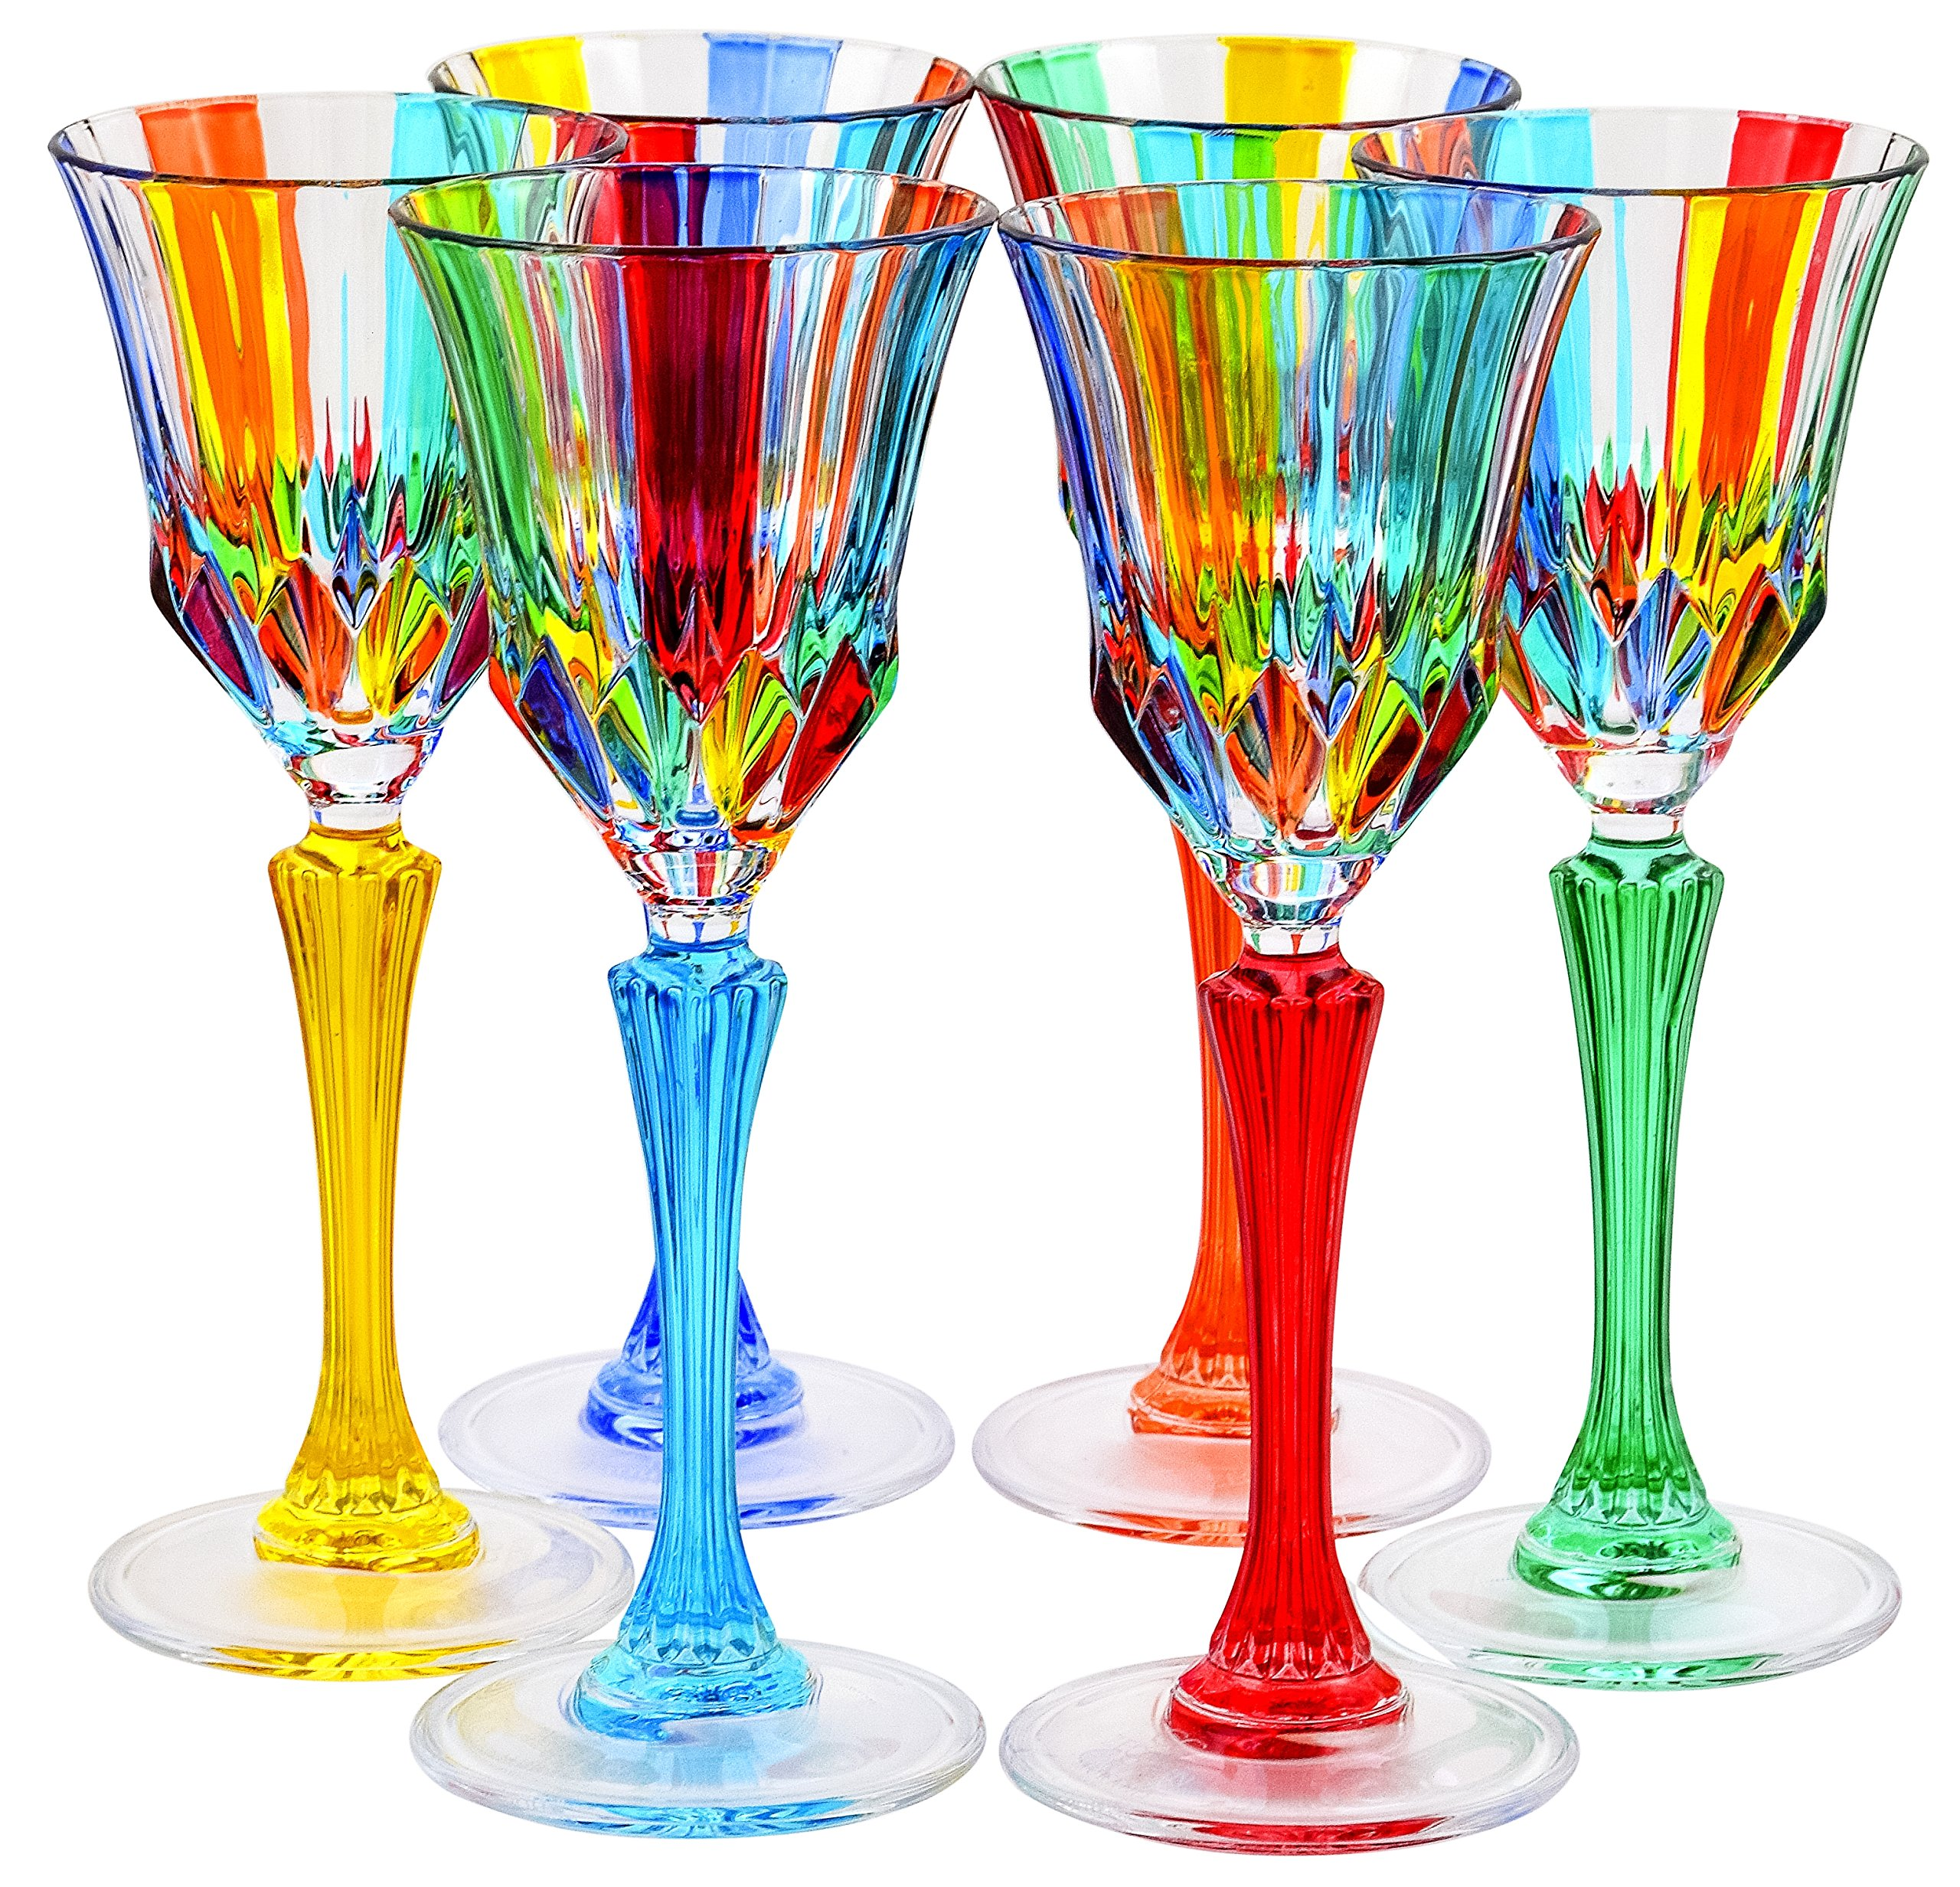 CALICE ADAGIO Glasses Liquor Crystal Hand Painted Traditional Technique Colors Venice-Multi-colored